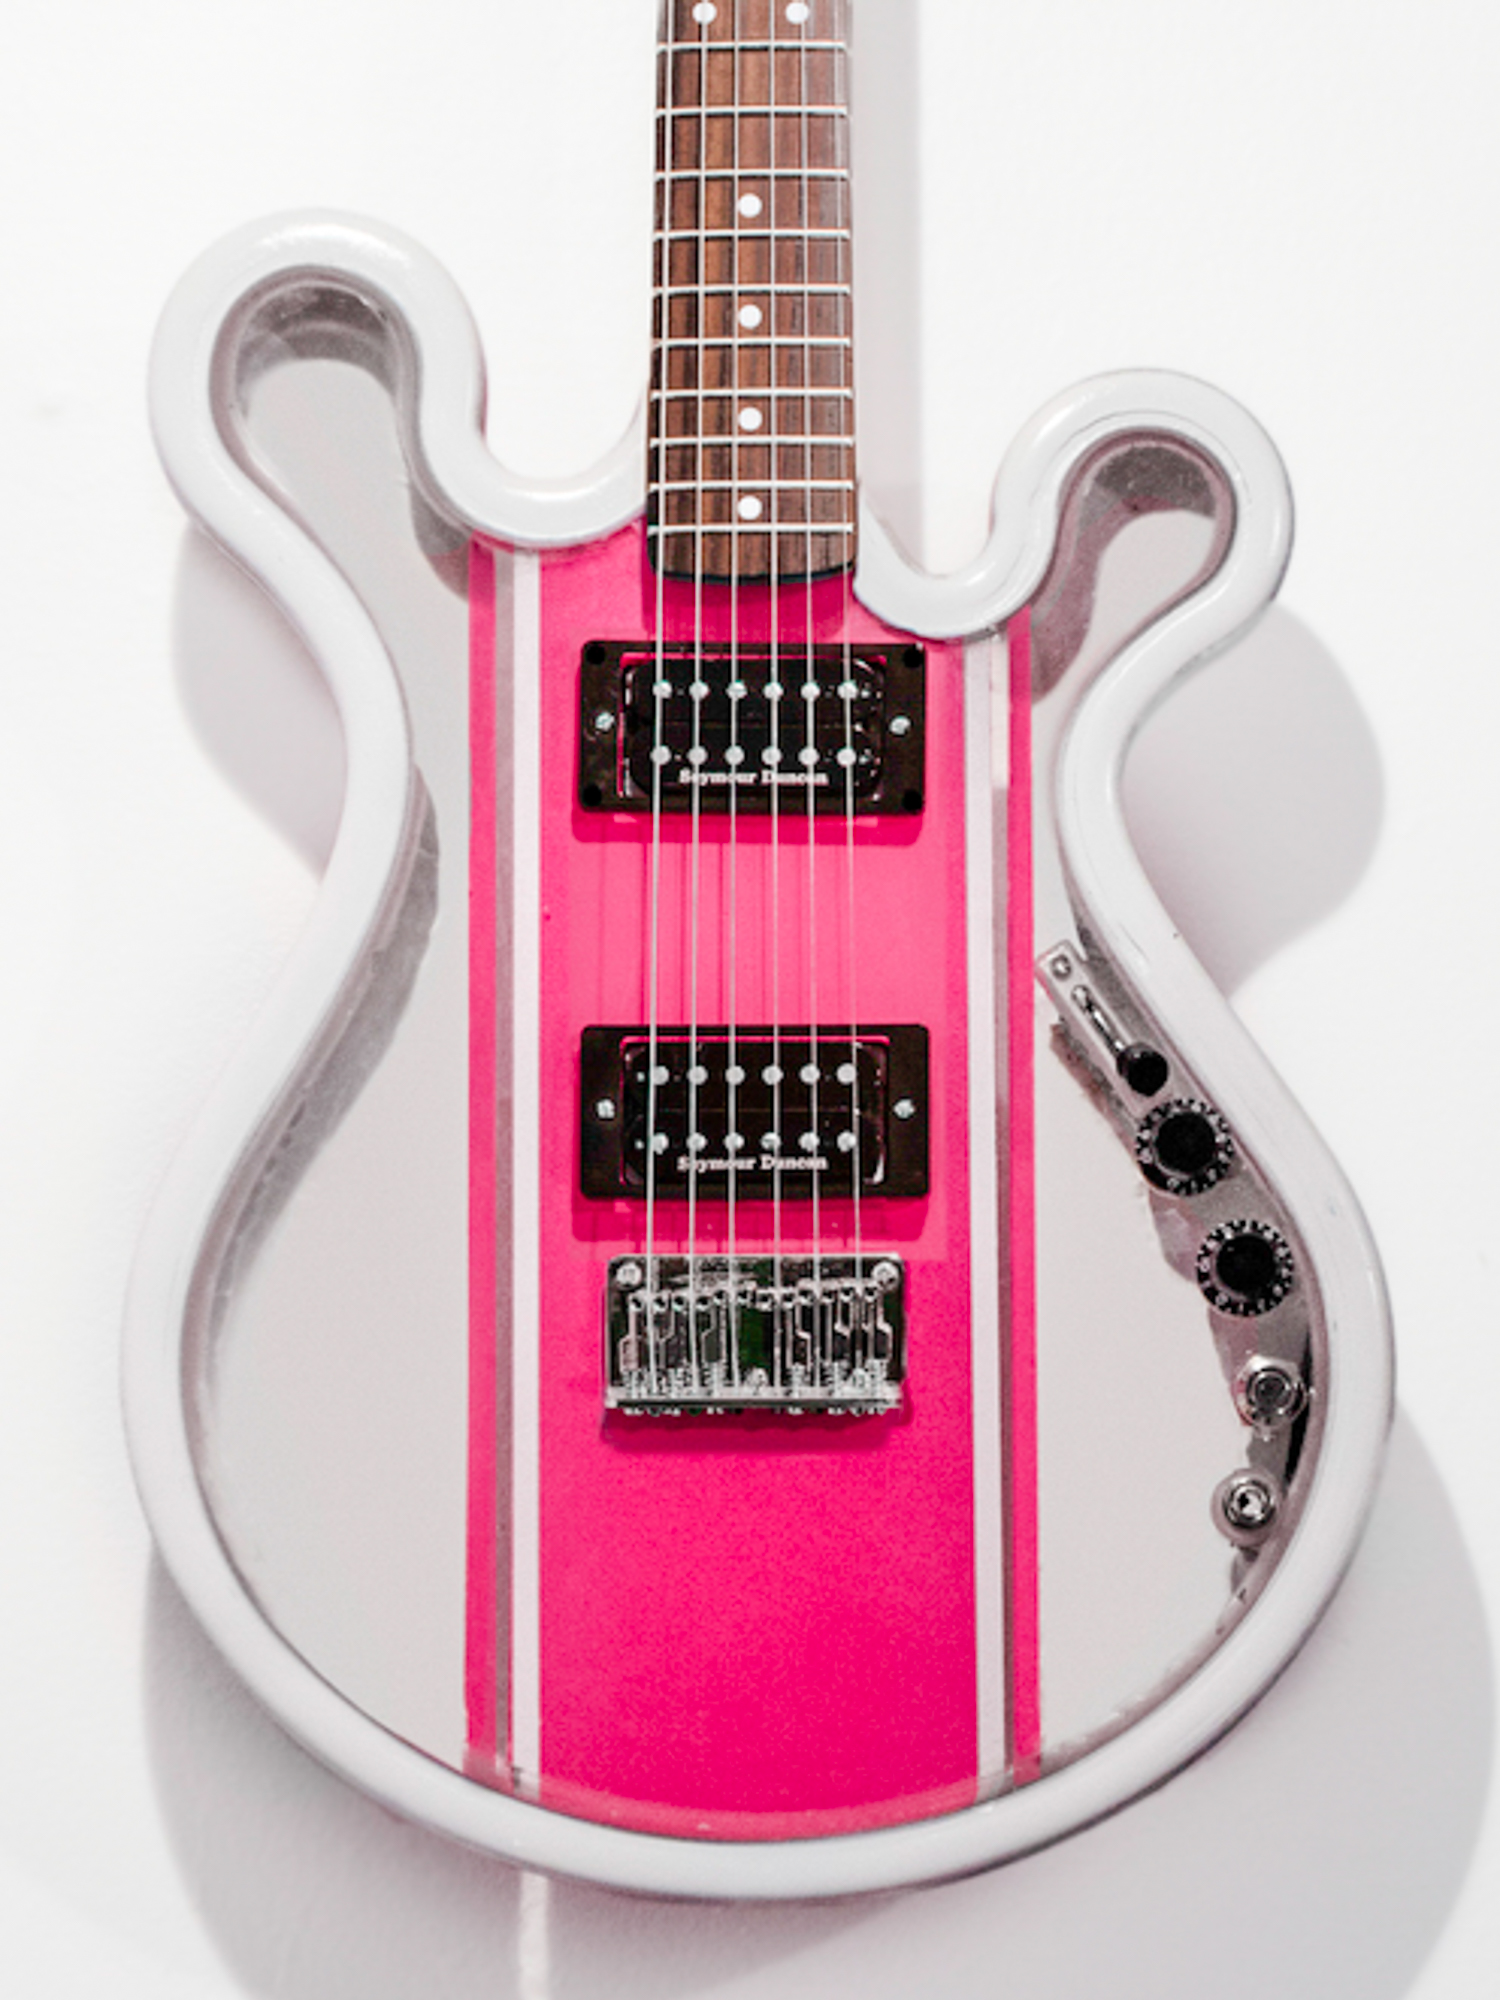 Gallo_Guitar_Runner_White_Pink_LED.jpg